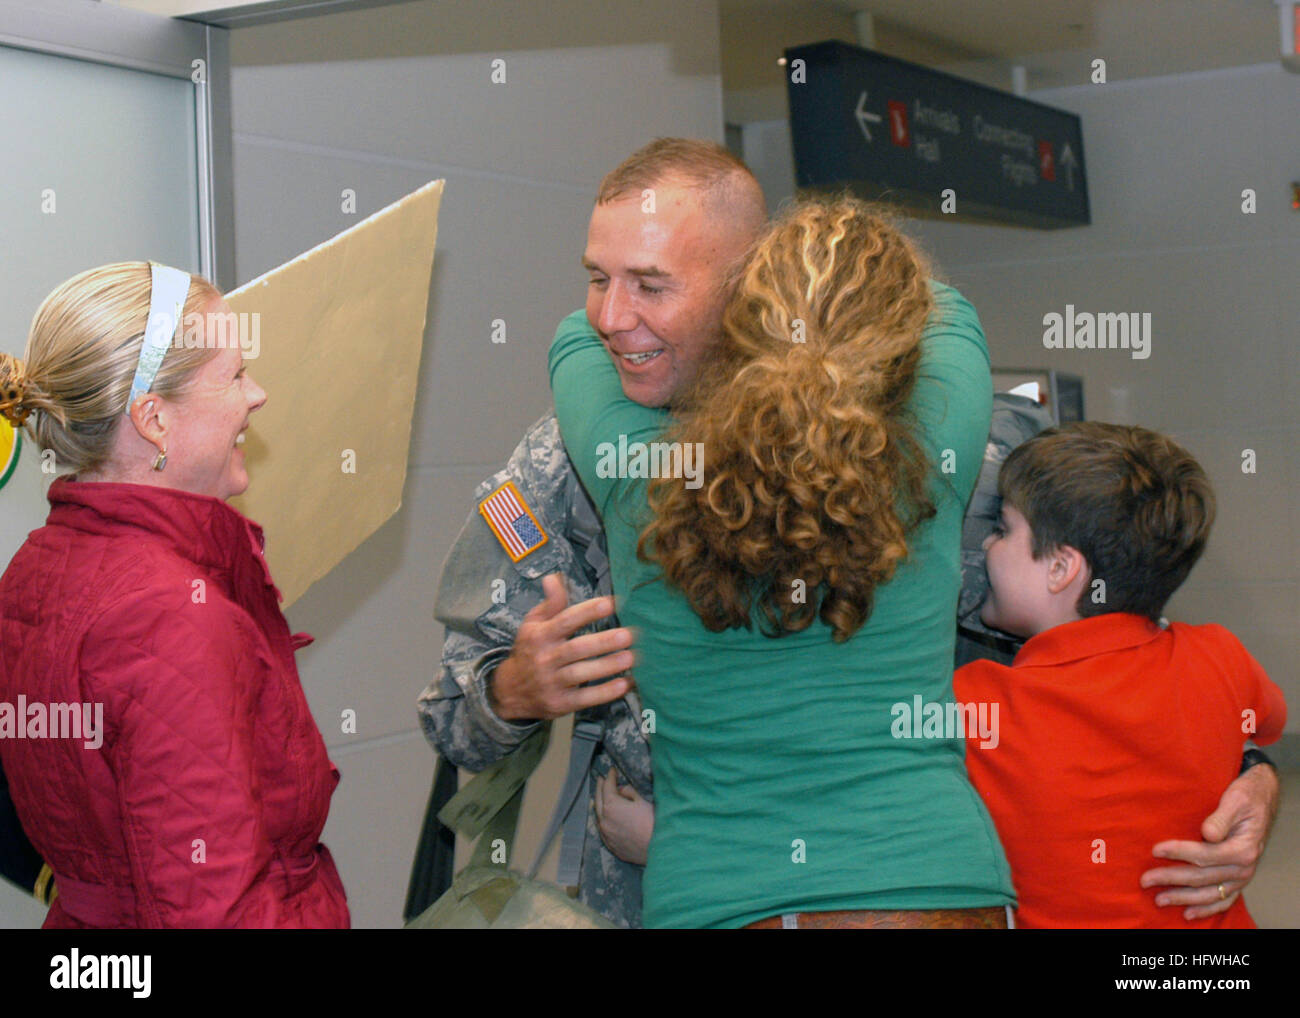 081113-N-2555T-033 BALTIMORE, Md. (Nov. 13, 2008) Cmdr. Greg Hilton, from Severna Park, Md., greets his family after - Stock Image